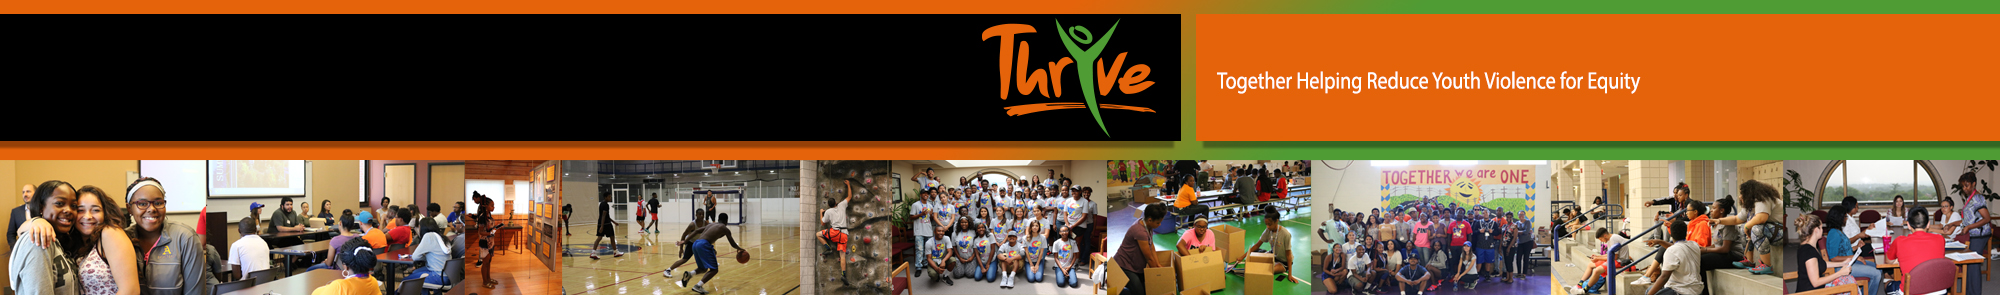 ThrYve logo and banner image featuring a collage with photos of youth in the organization.